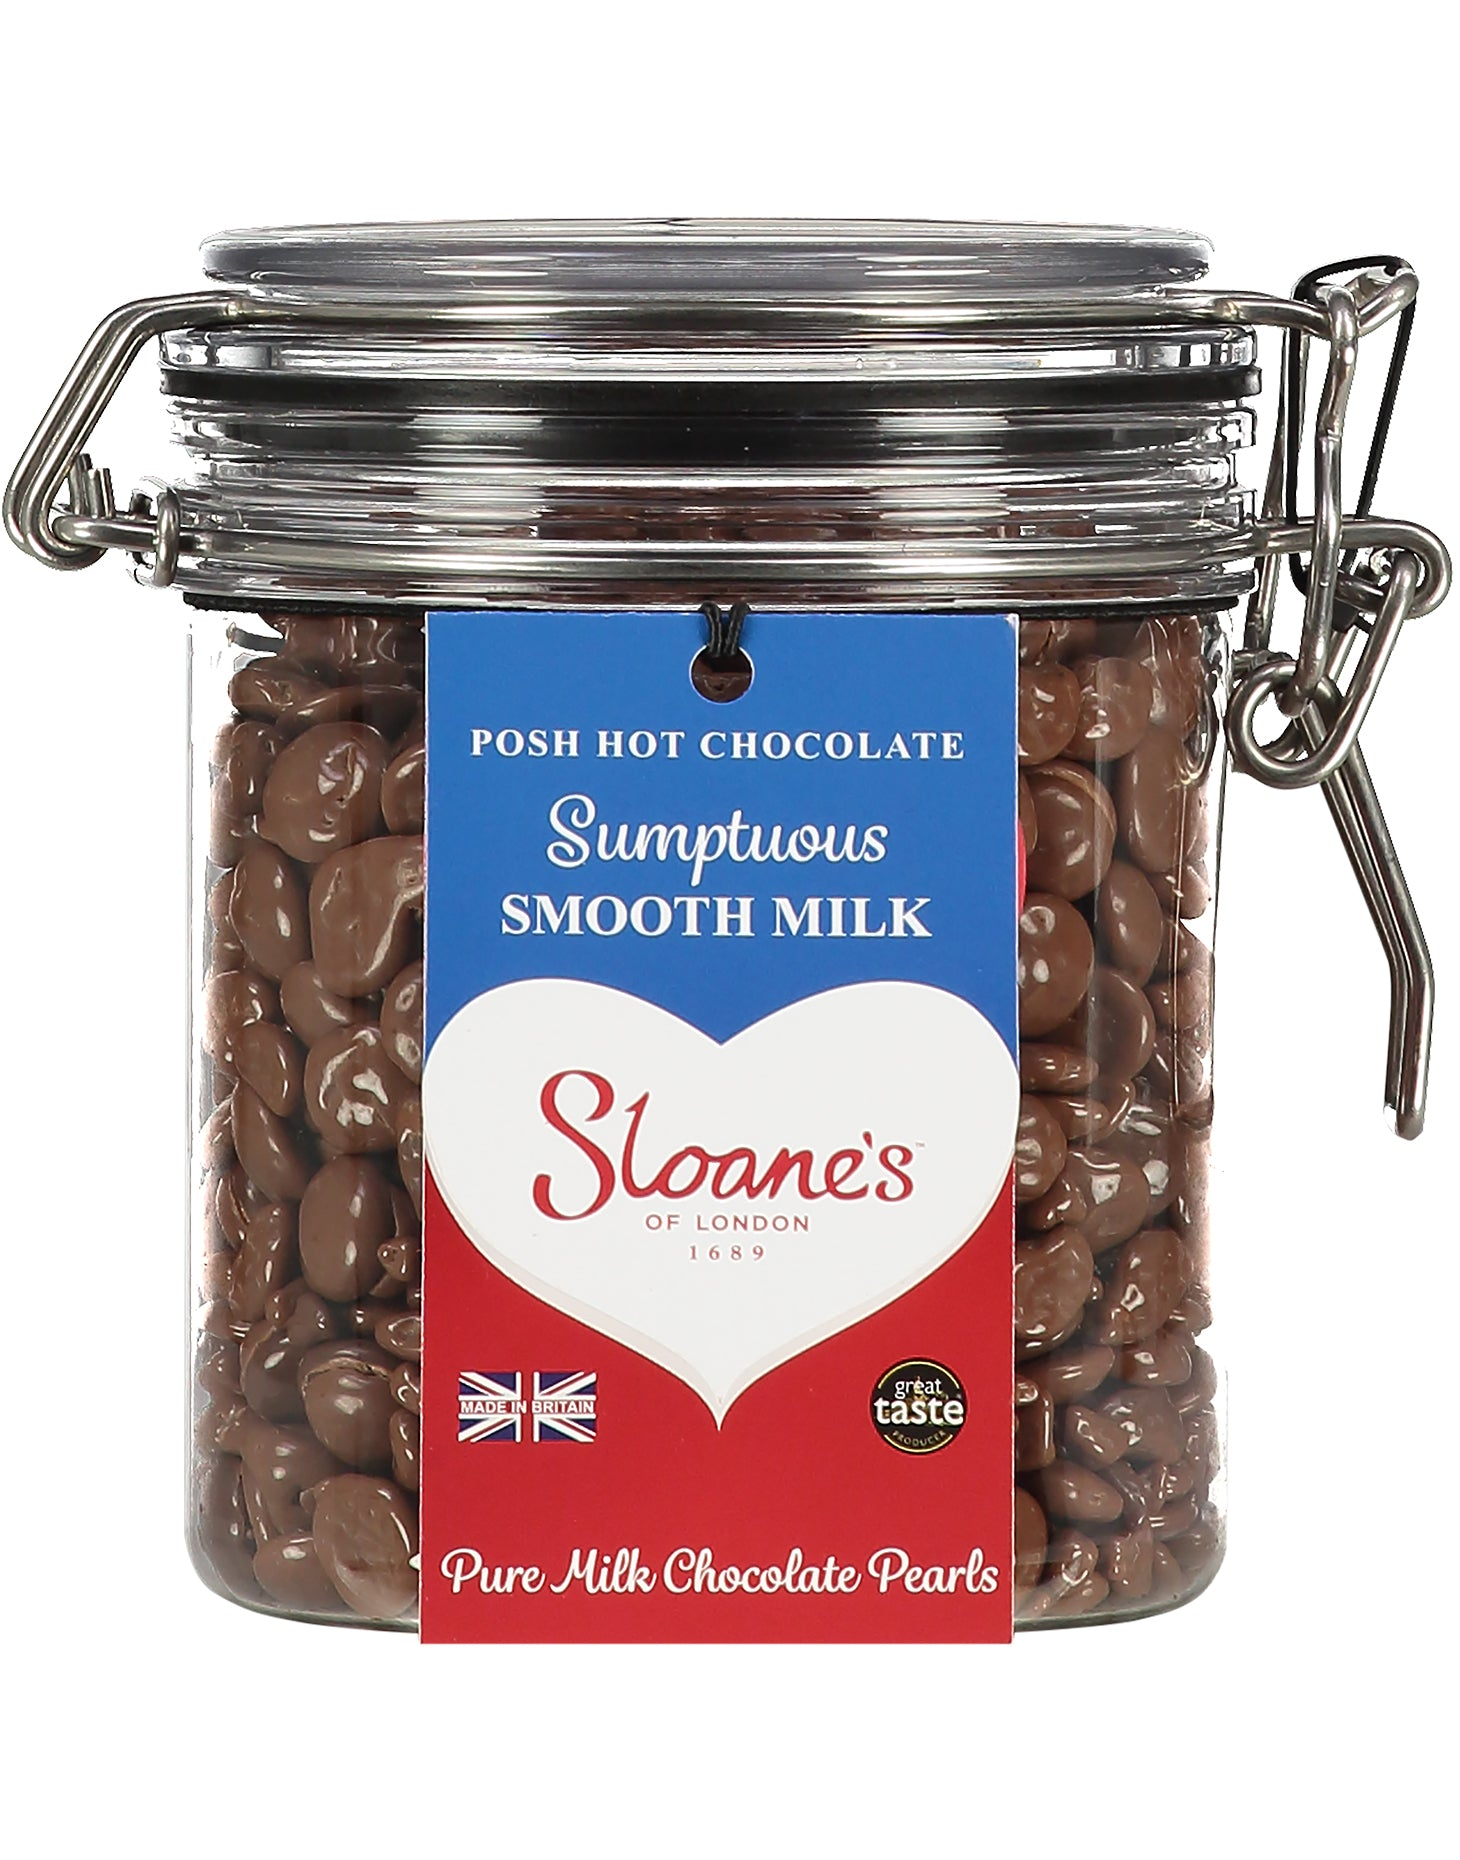 Sumptuous Smooth Milk 34% Gift Jar